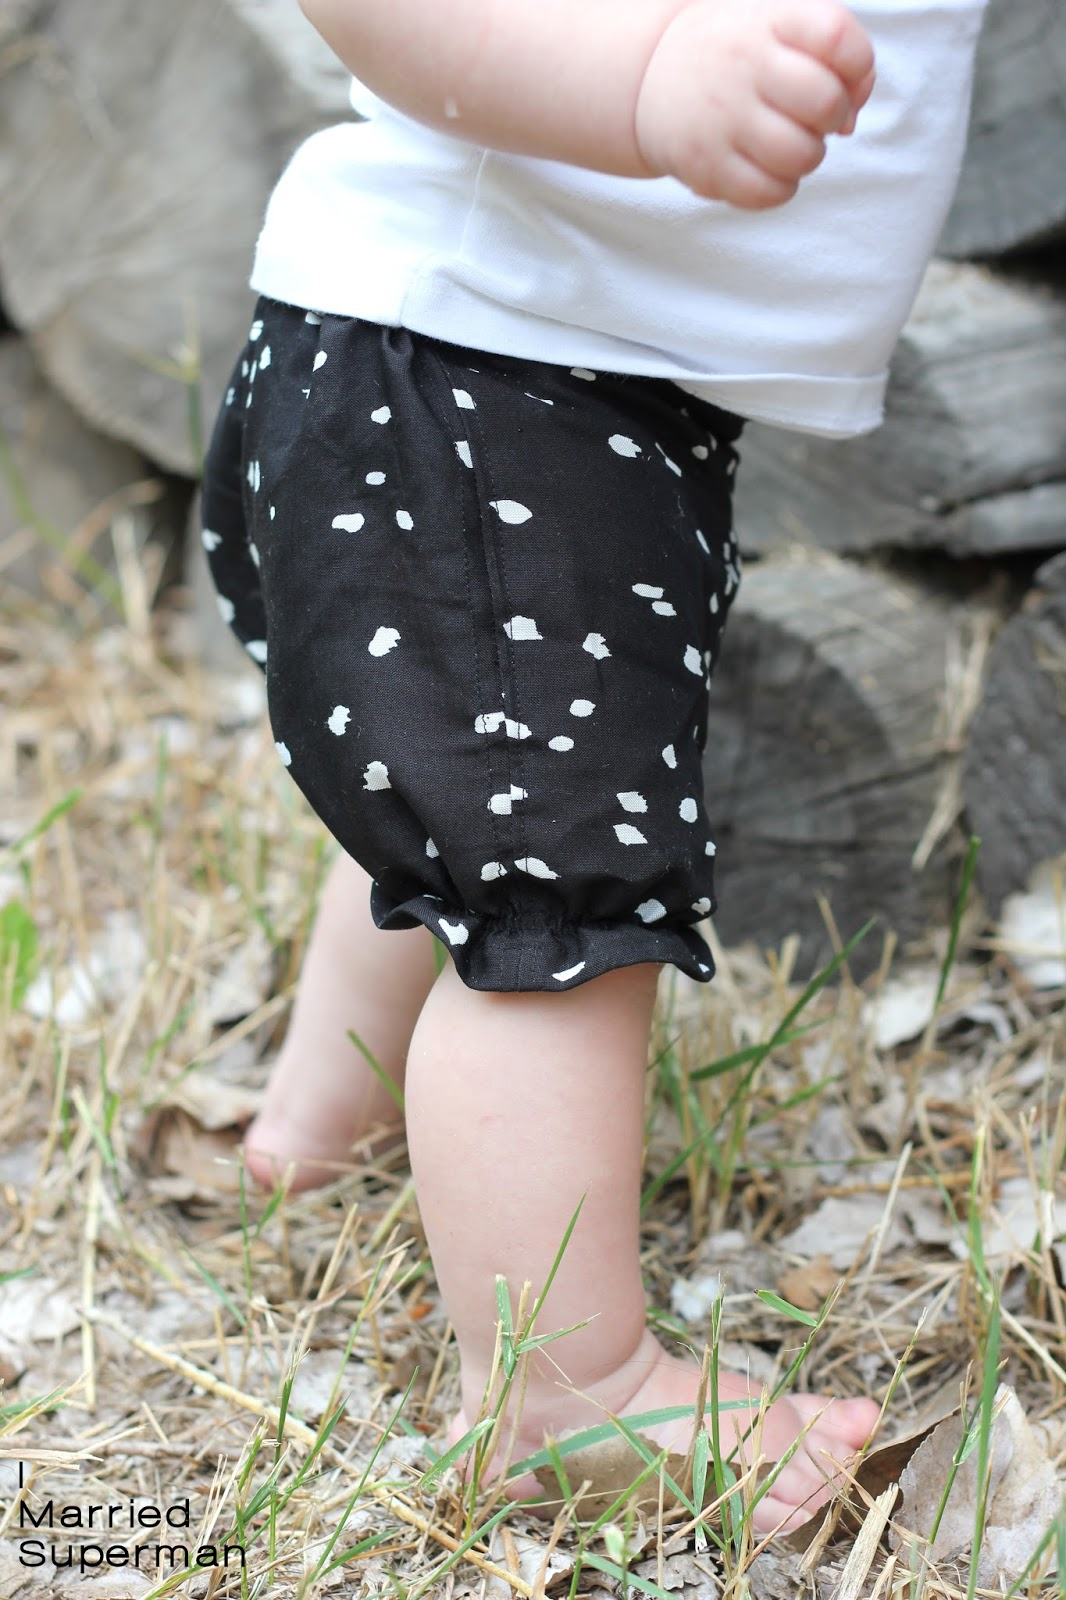 15f2b4d9122f I Married Superman  Baby Bubble Shorts  Tutorial